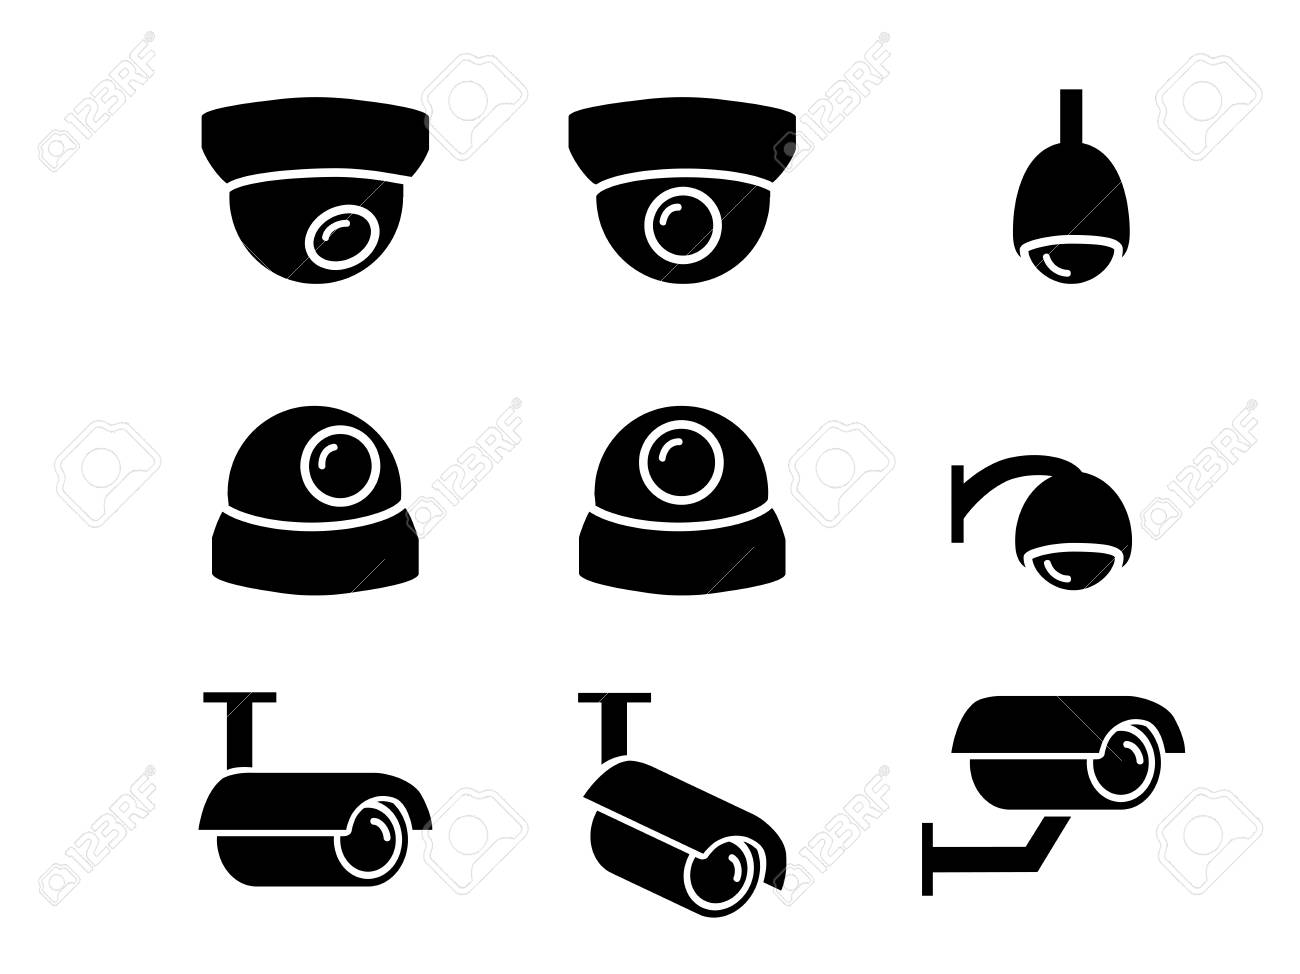 CCTV camera icons and symbol in silhouette vector art - 94777289